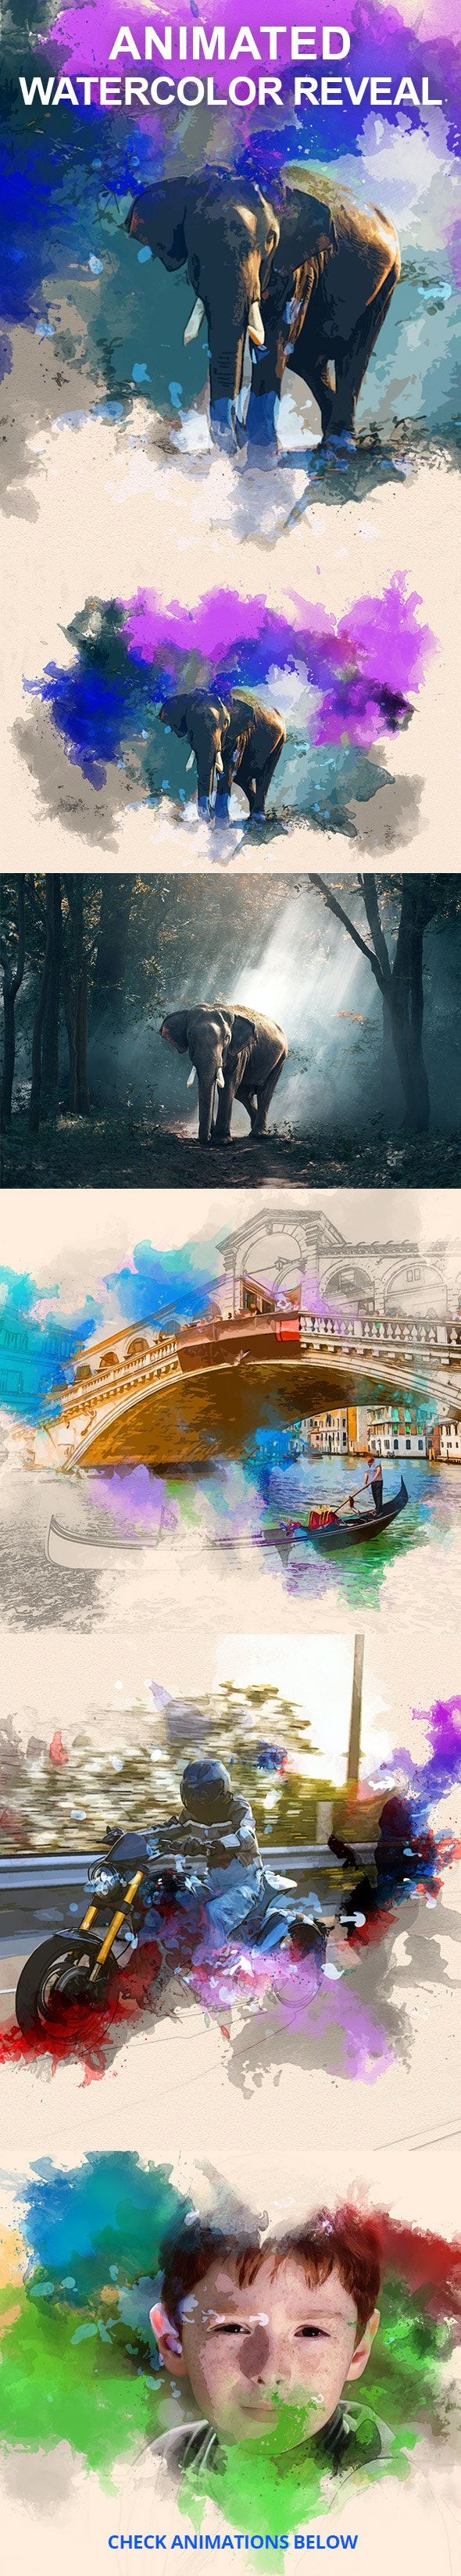 Animated Watercolor Reveal Photoshop Action - Photo Effects Actions